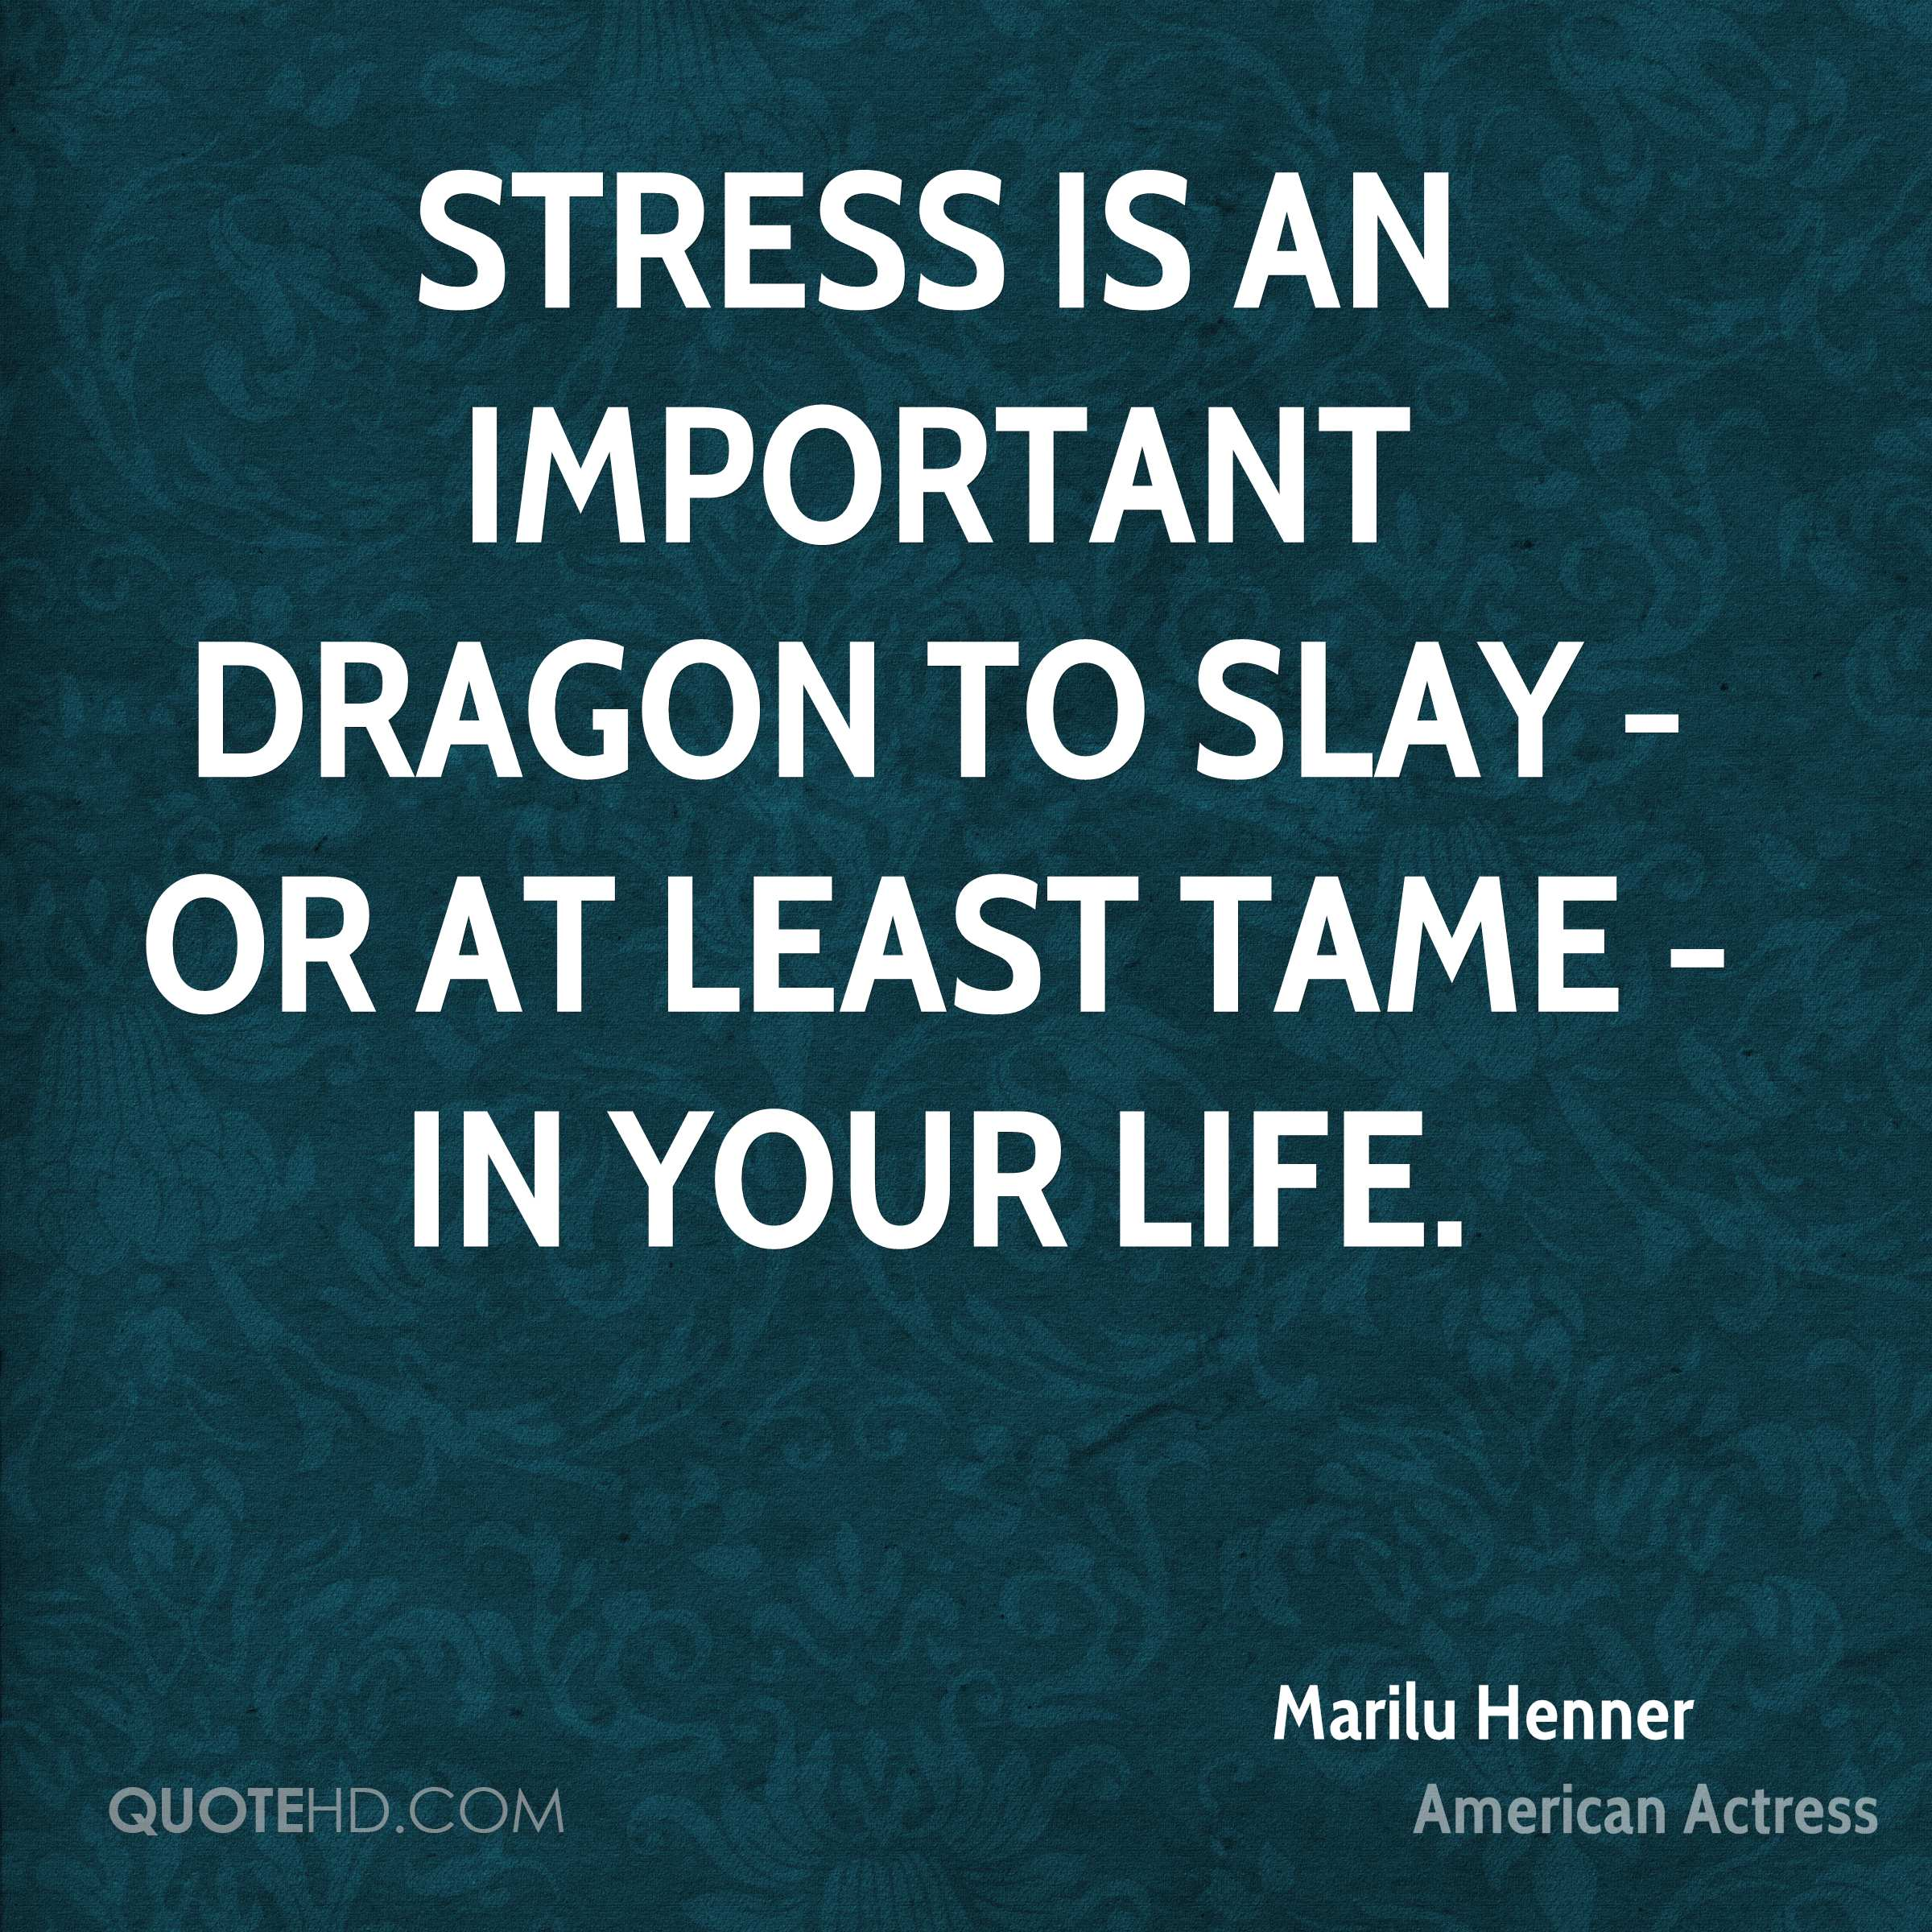 Stress is an important dragon to slay - or at least tame - in your life.